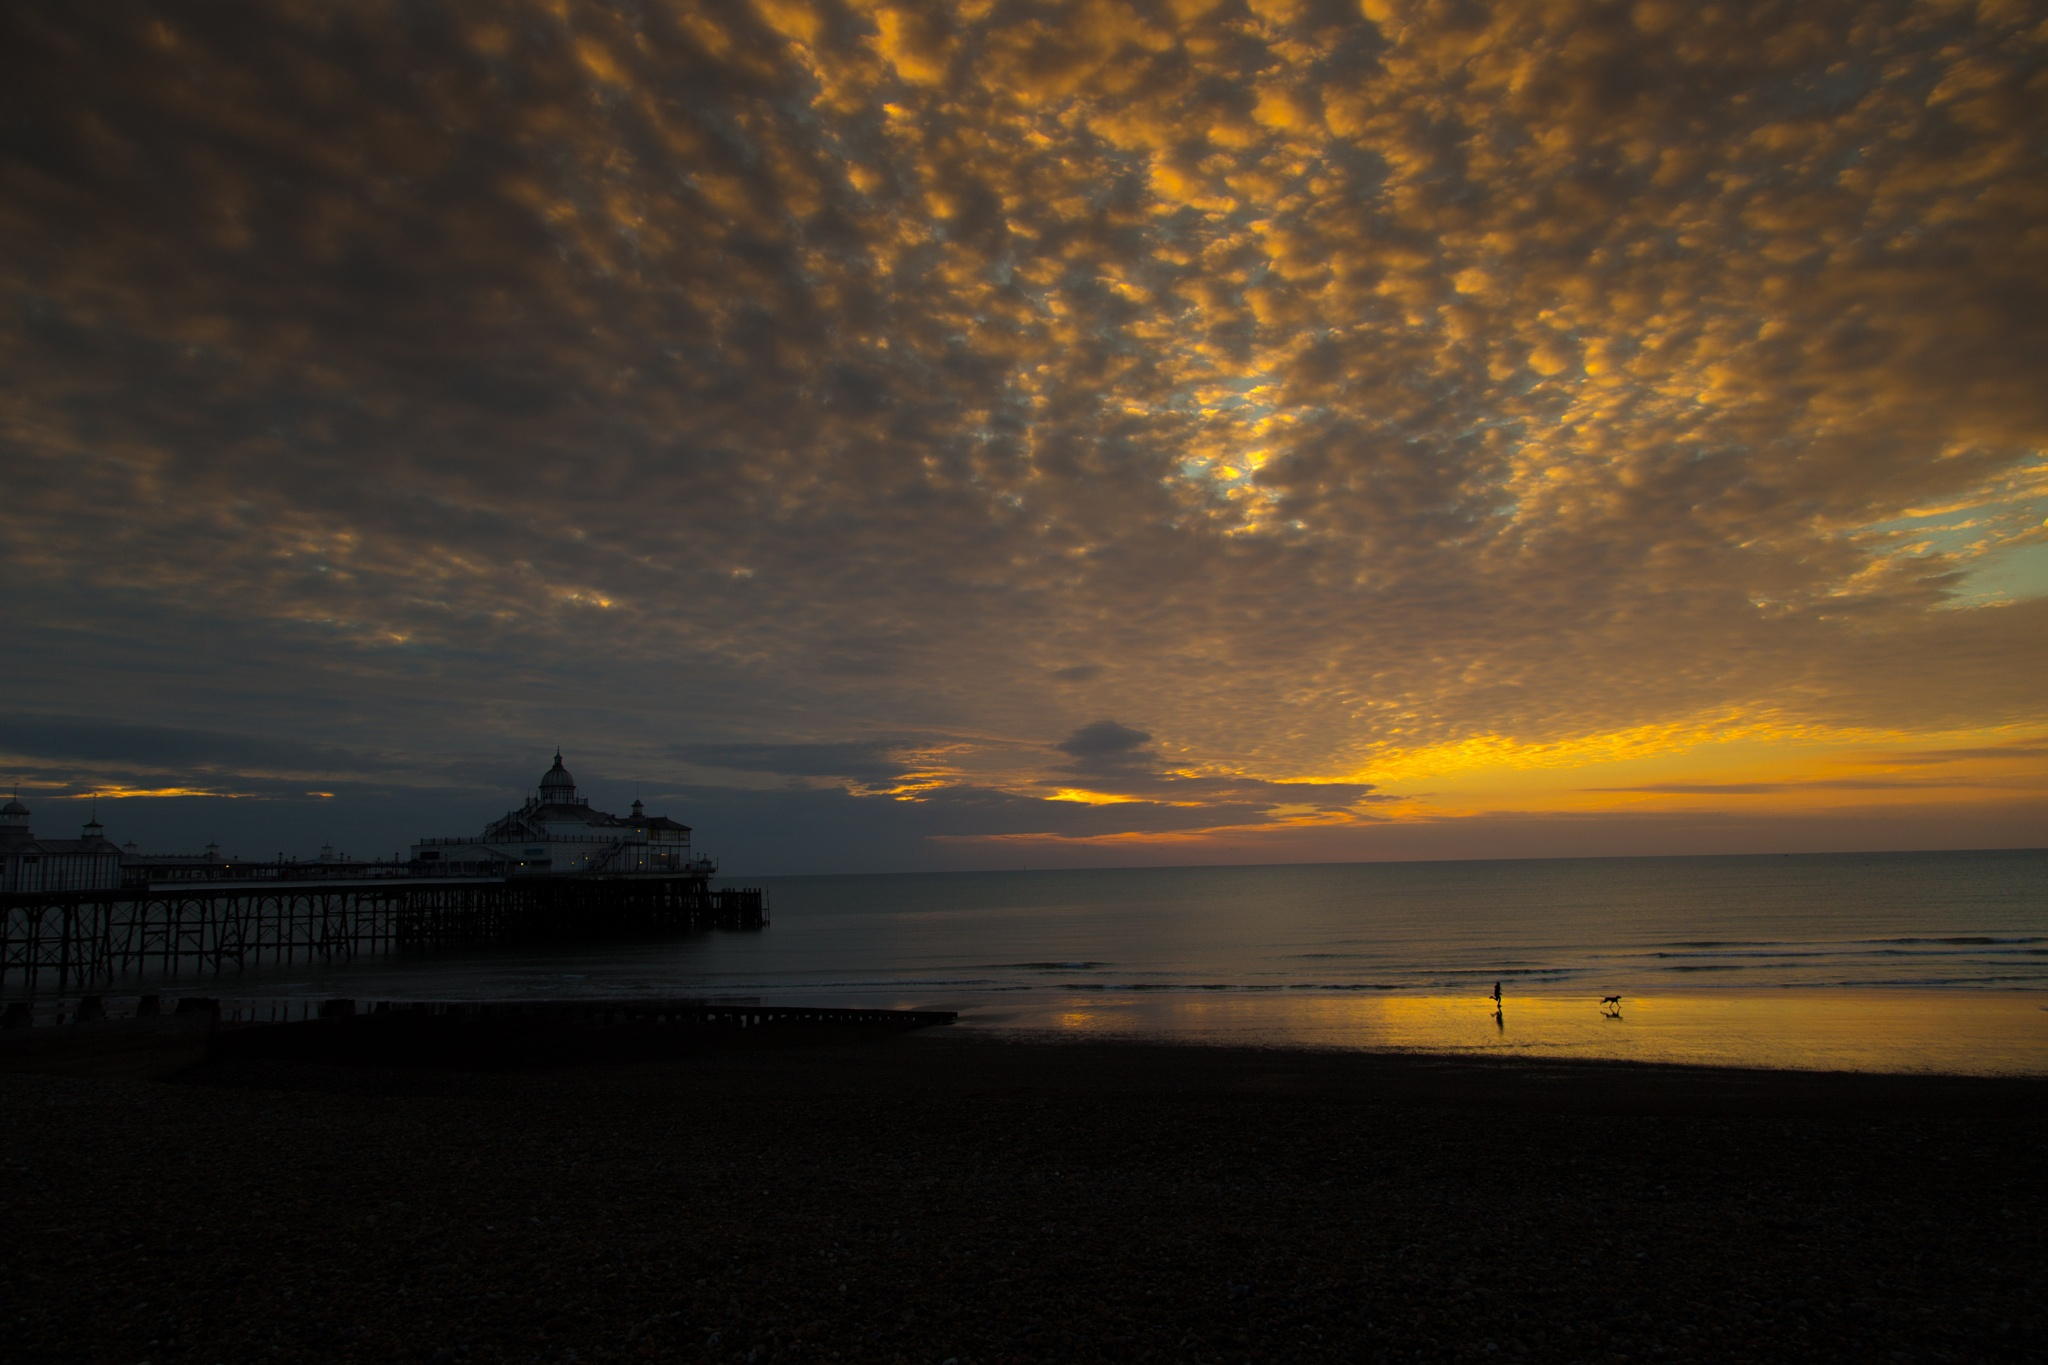 sunrise over eastbourne pier by eddie.powell.9809